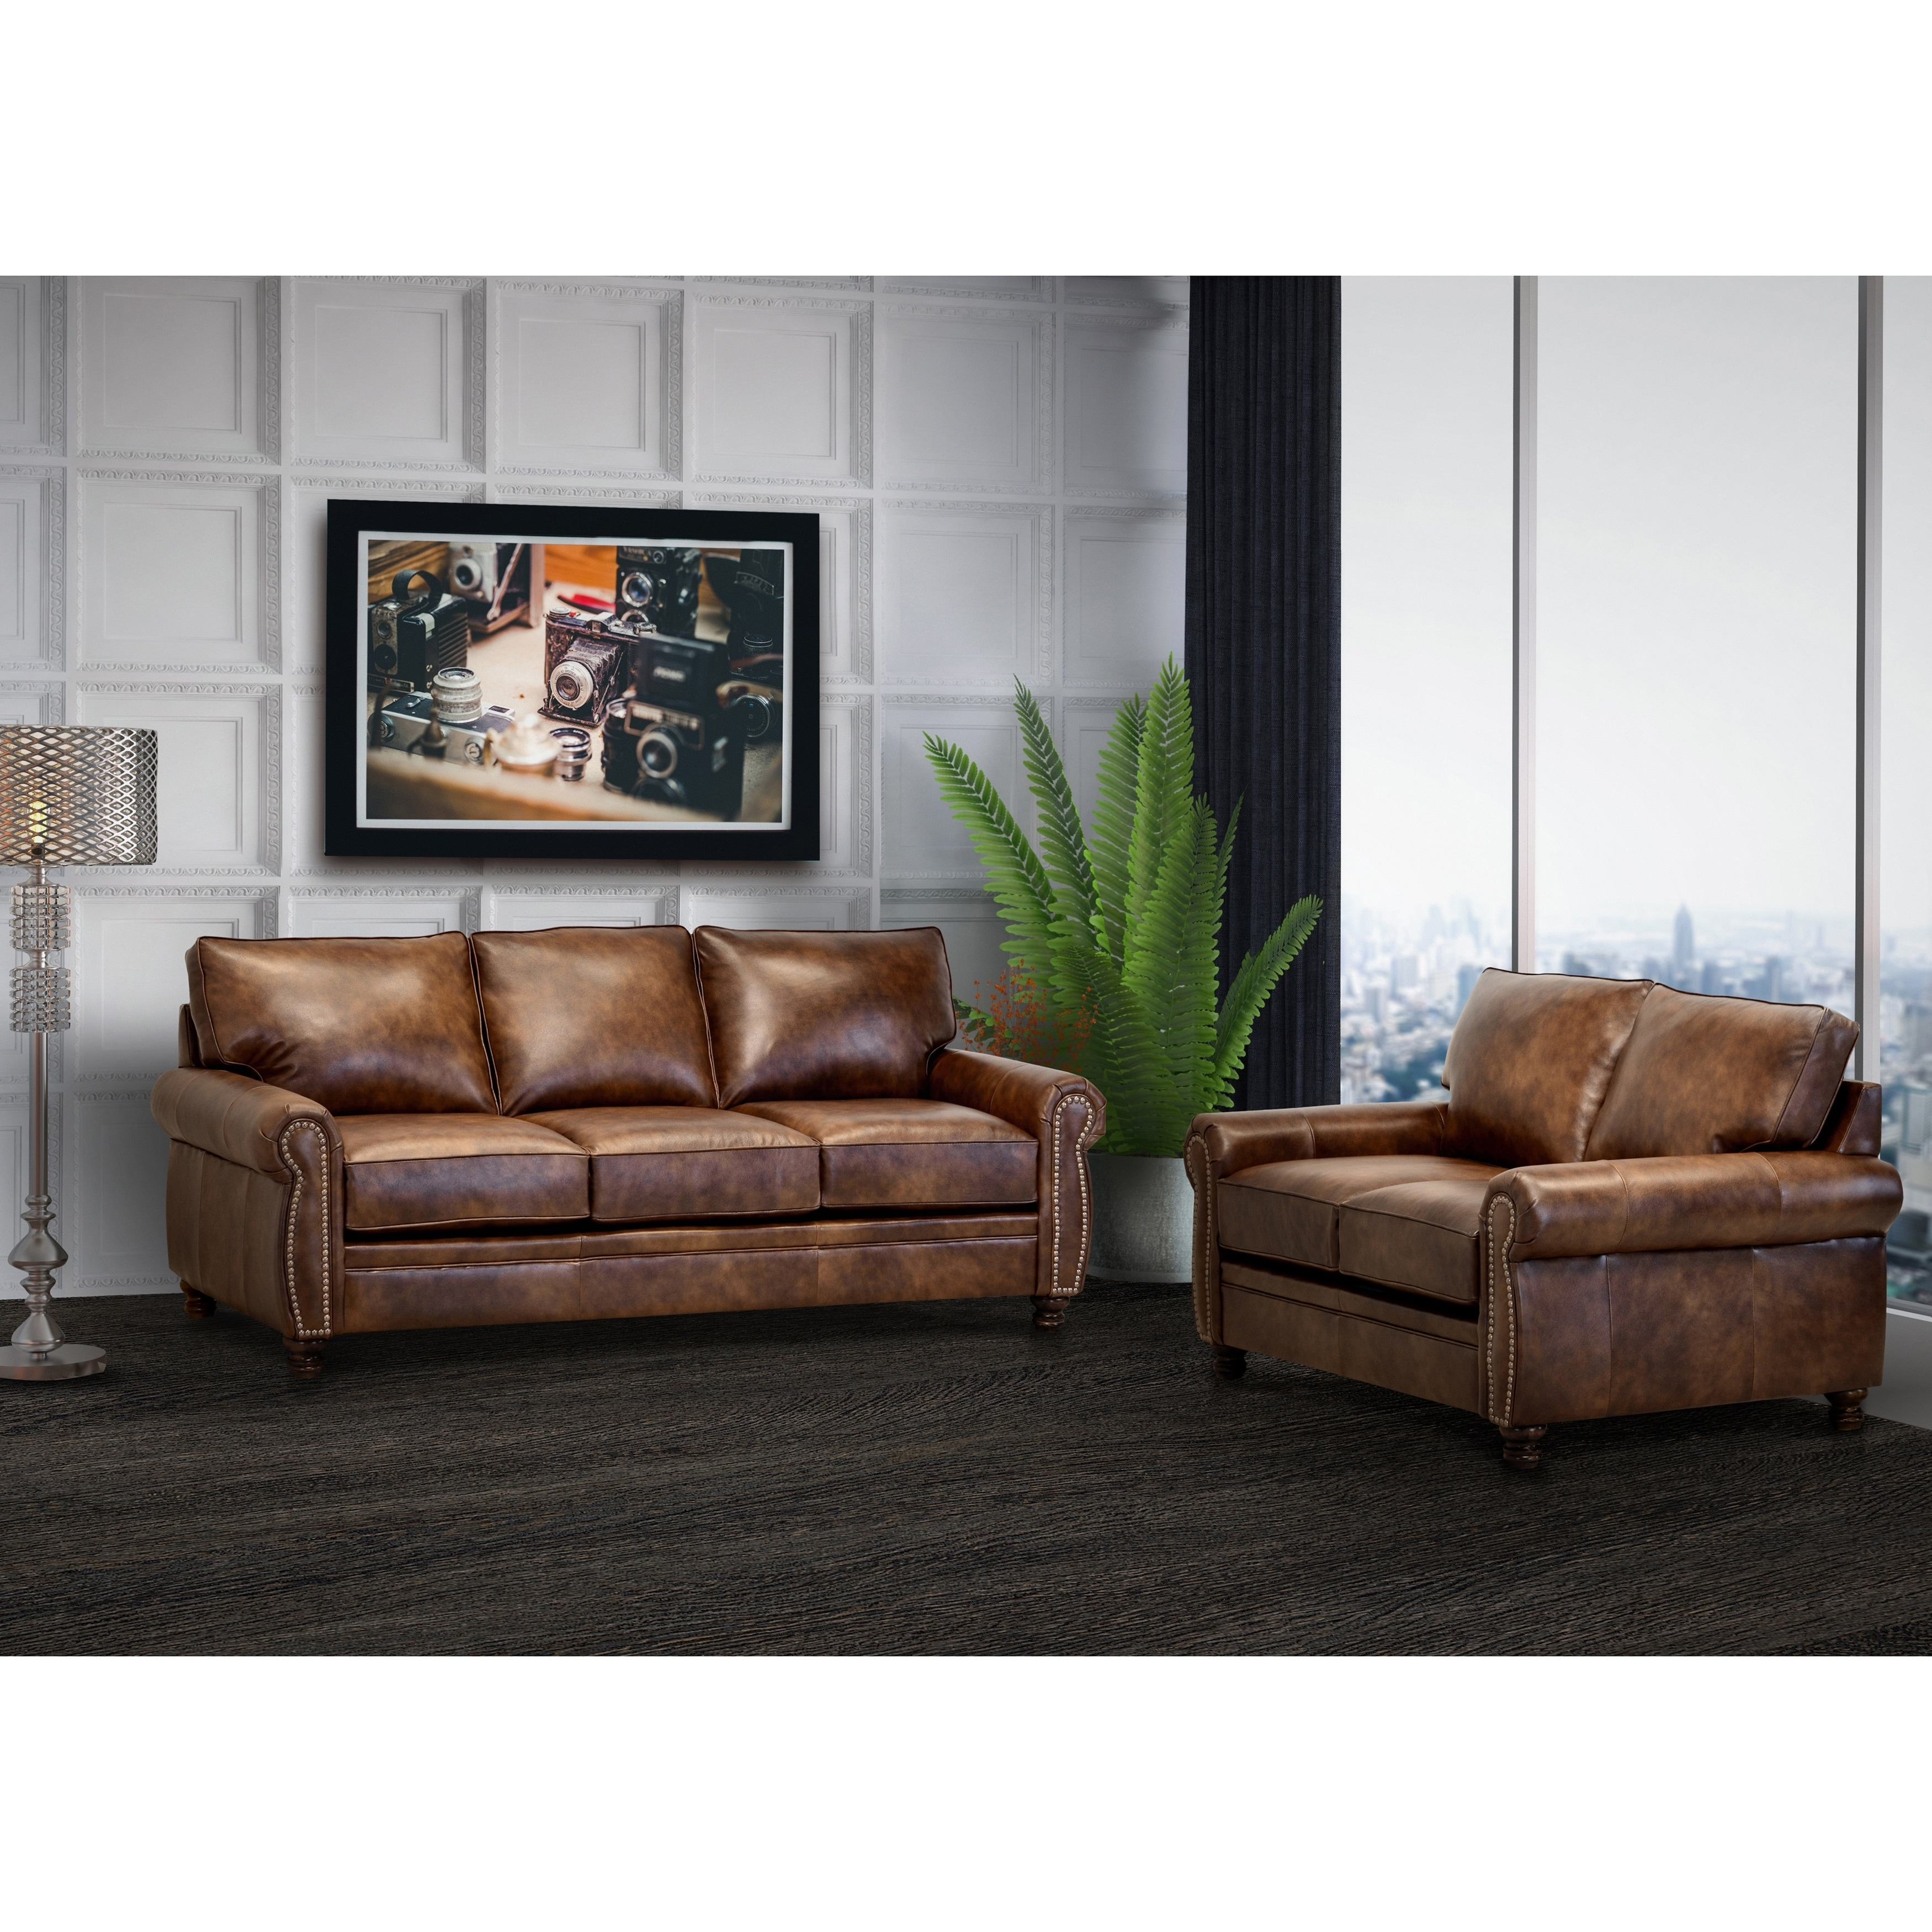 Made In Usa Cabot Brown Top Grain Leather Sofa And Loveseat On Sale Overstock 29738514